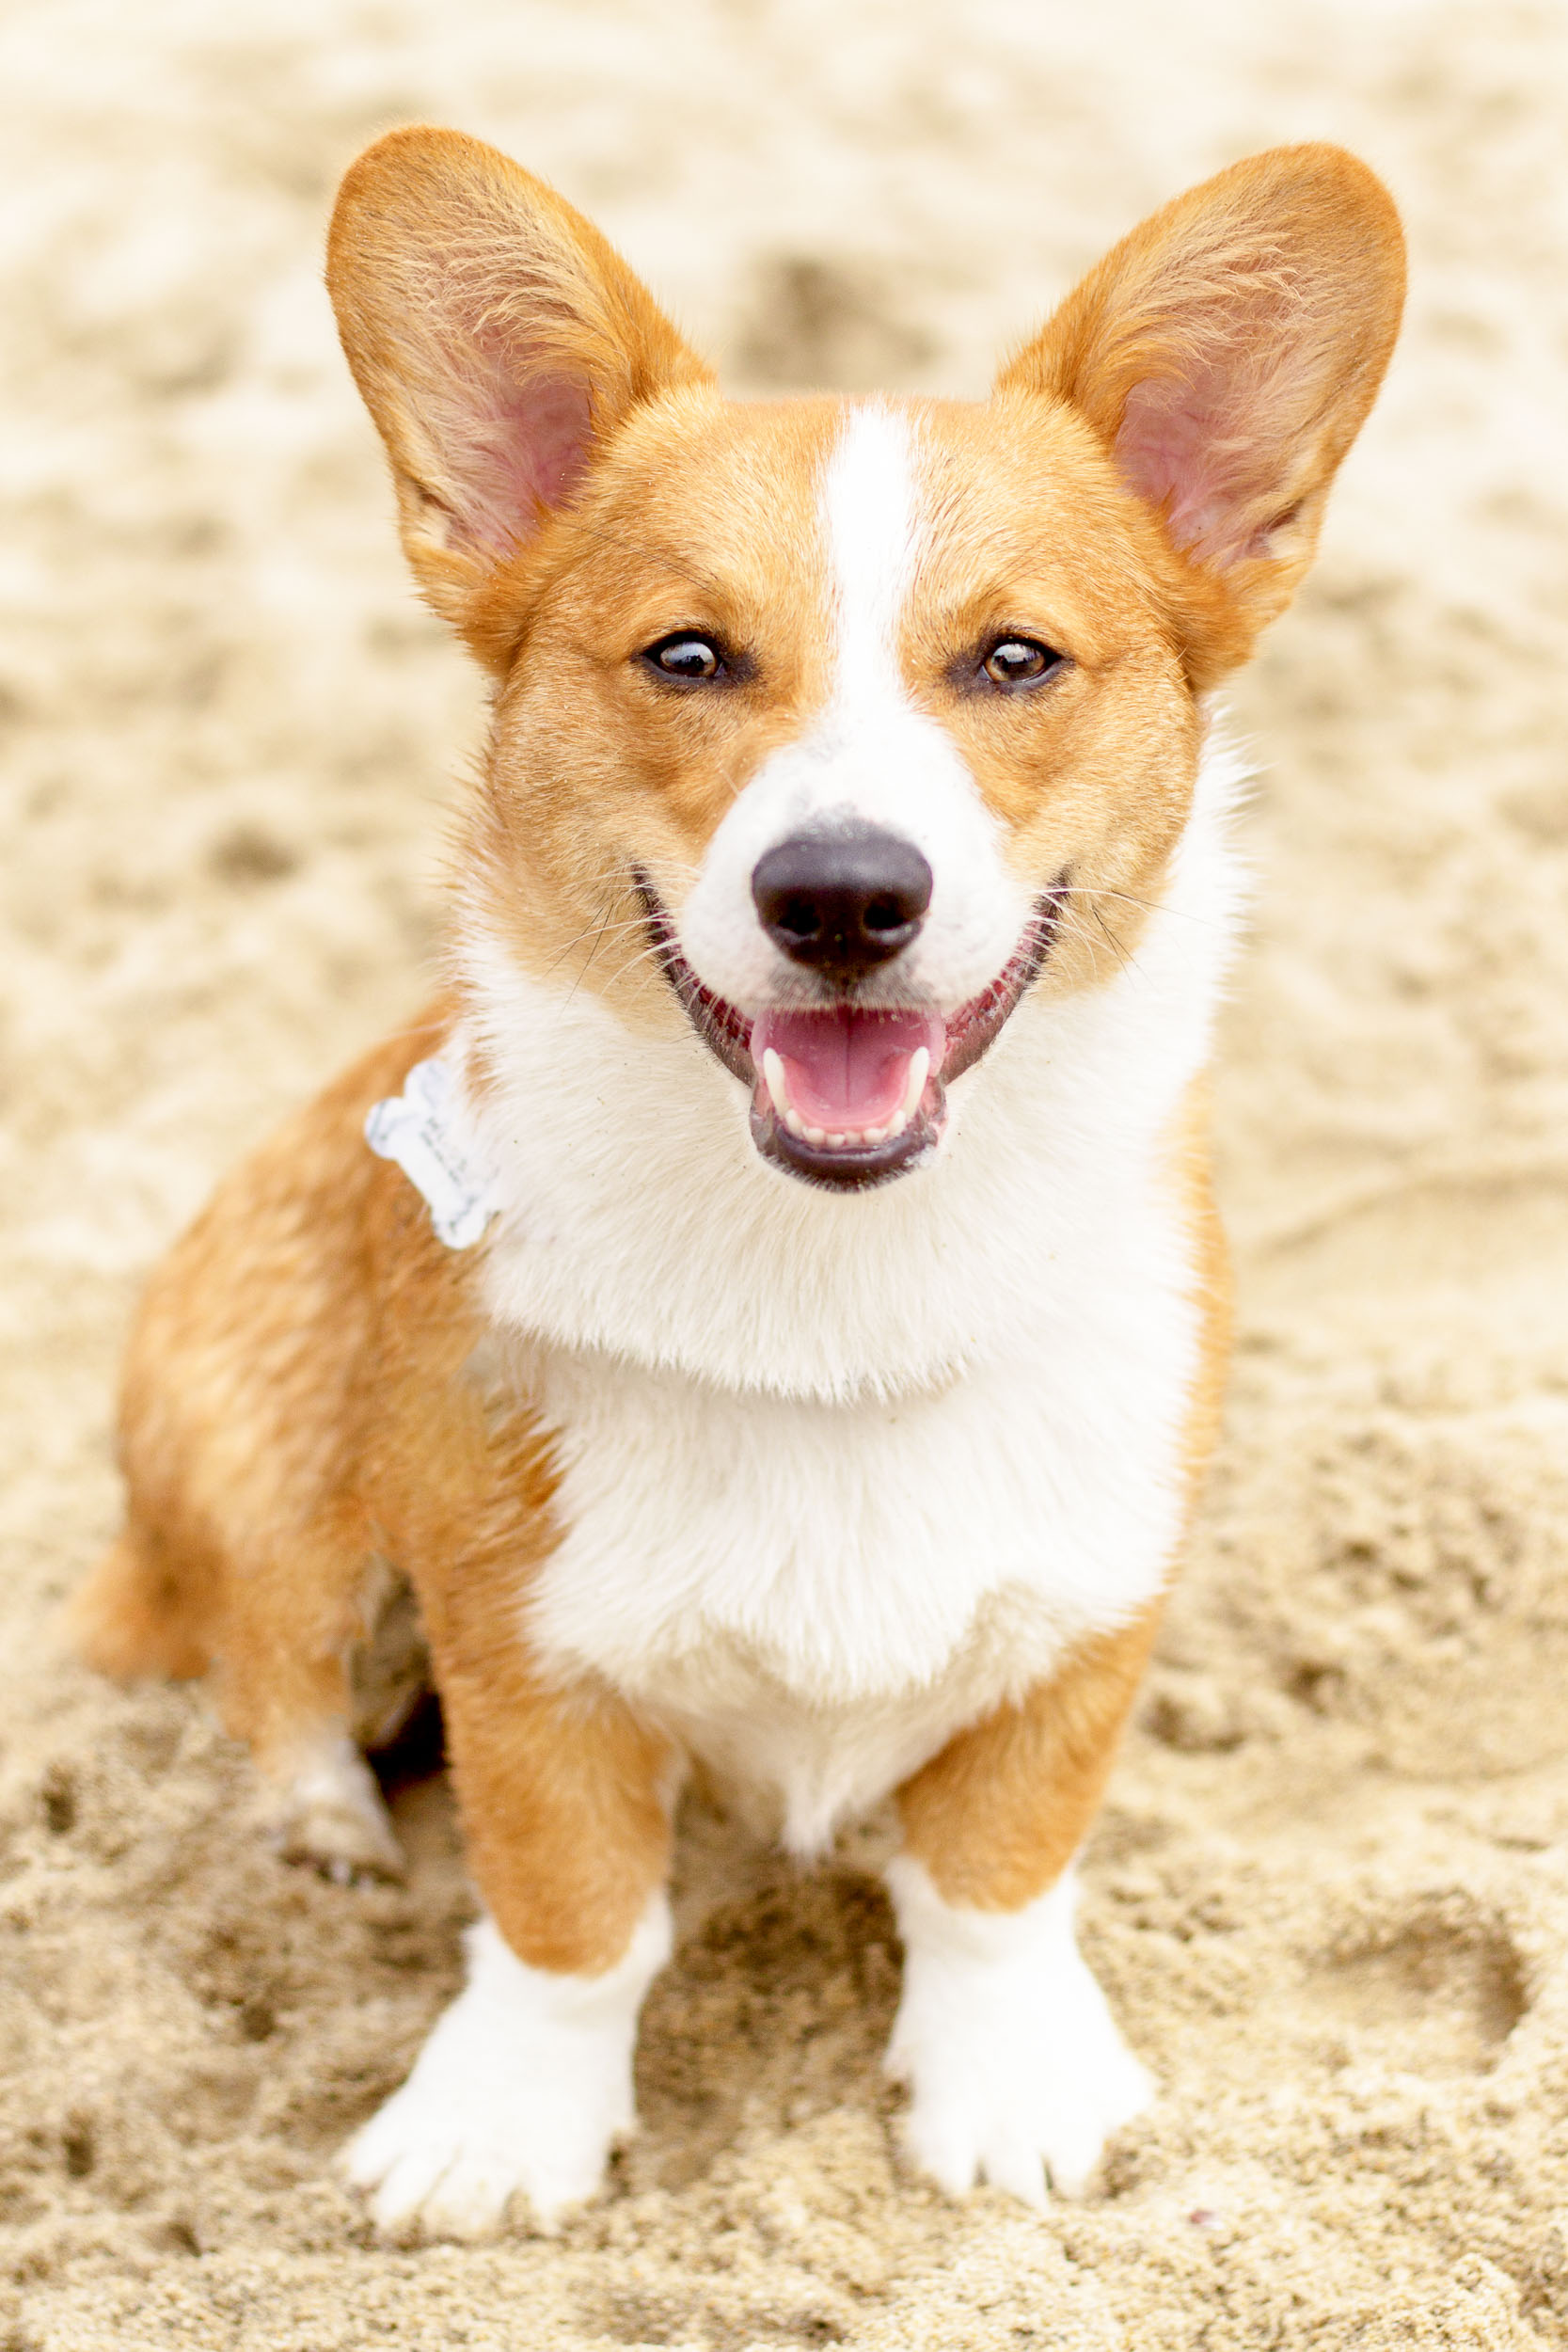 Orange-County-Dog-Photography-Pet-Huntington-Dog-Beach-SoCal-Corgi-Beach-Day_Steamer-Lee_012.JPG